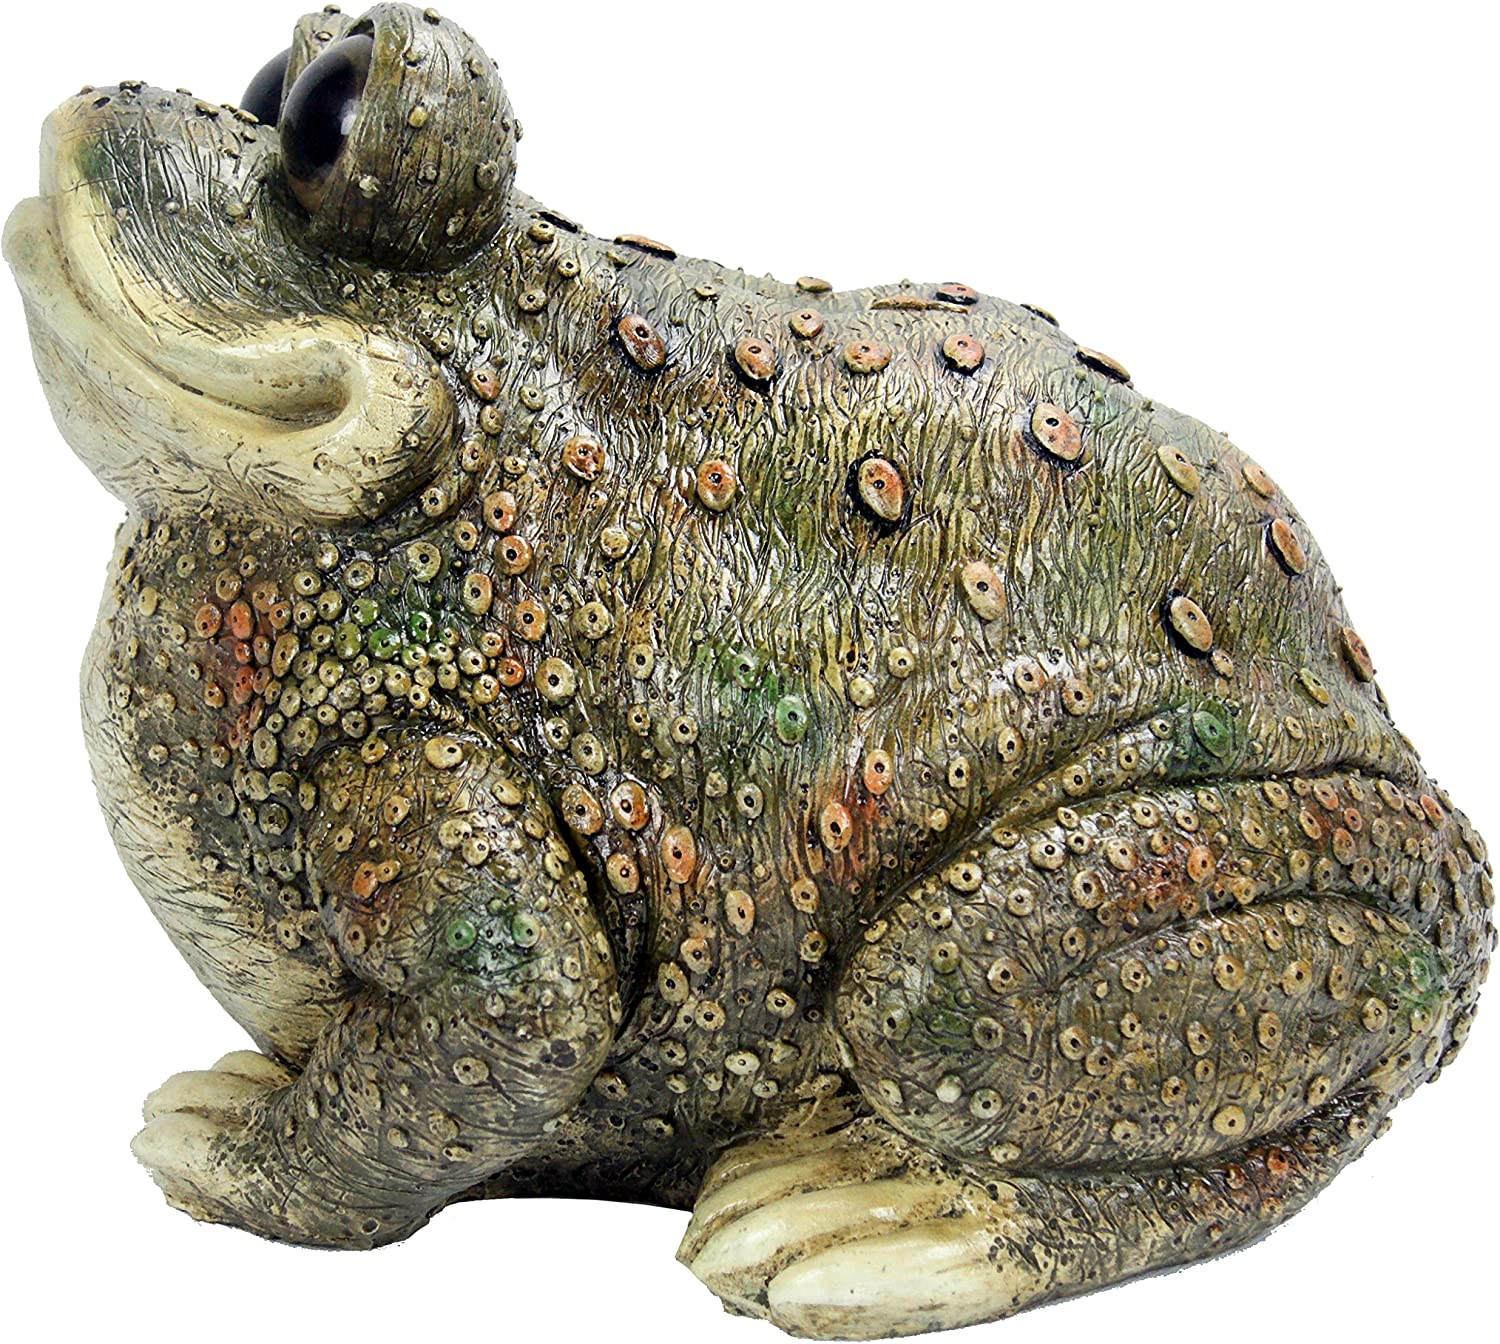 Michael Carr Designs Kenzie Toad Outdoor Toad Figurine for Gardens, patios and lawns (80084)